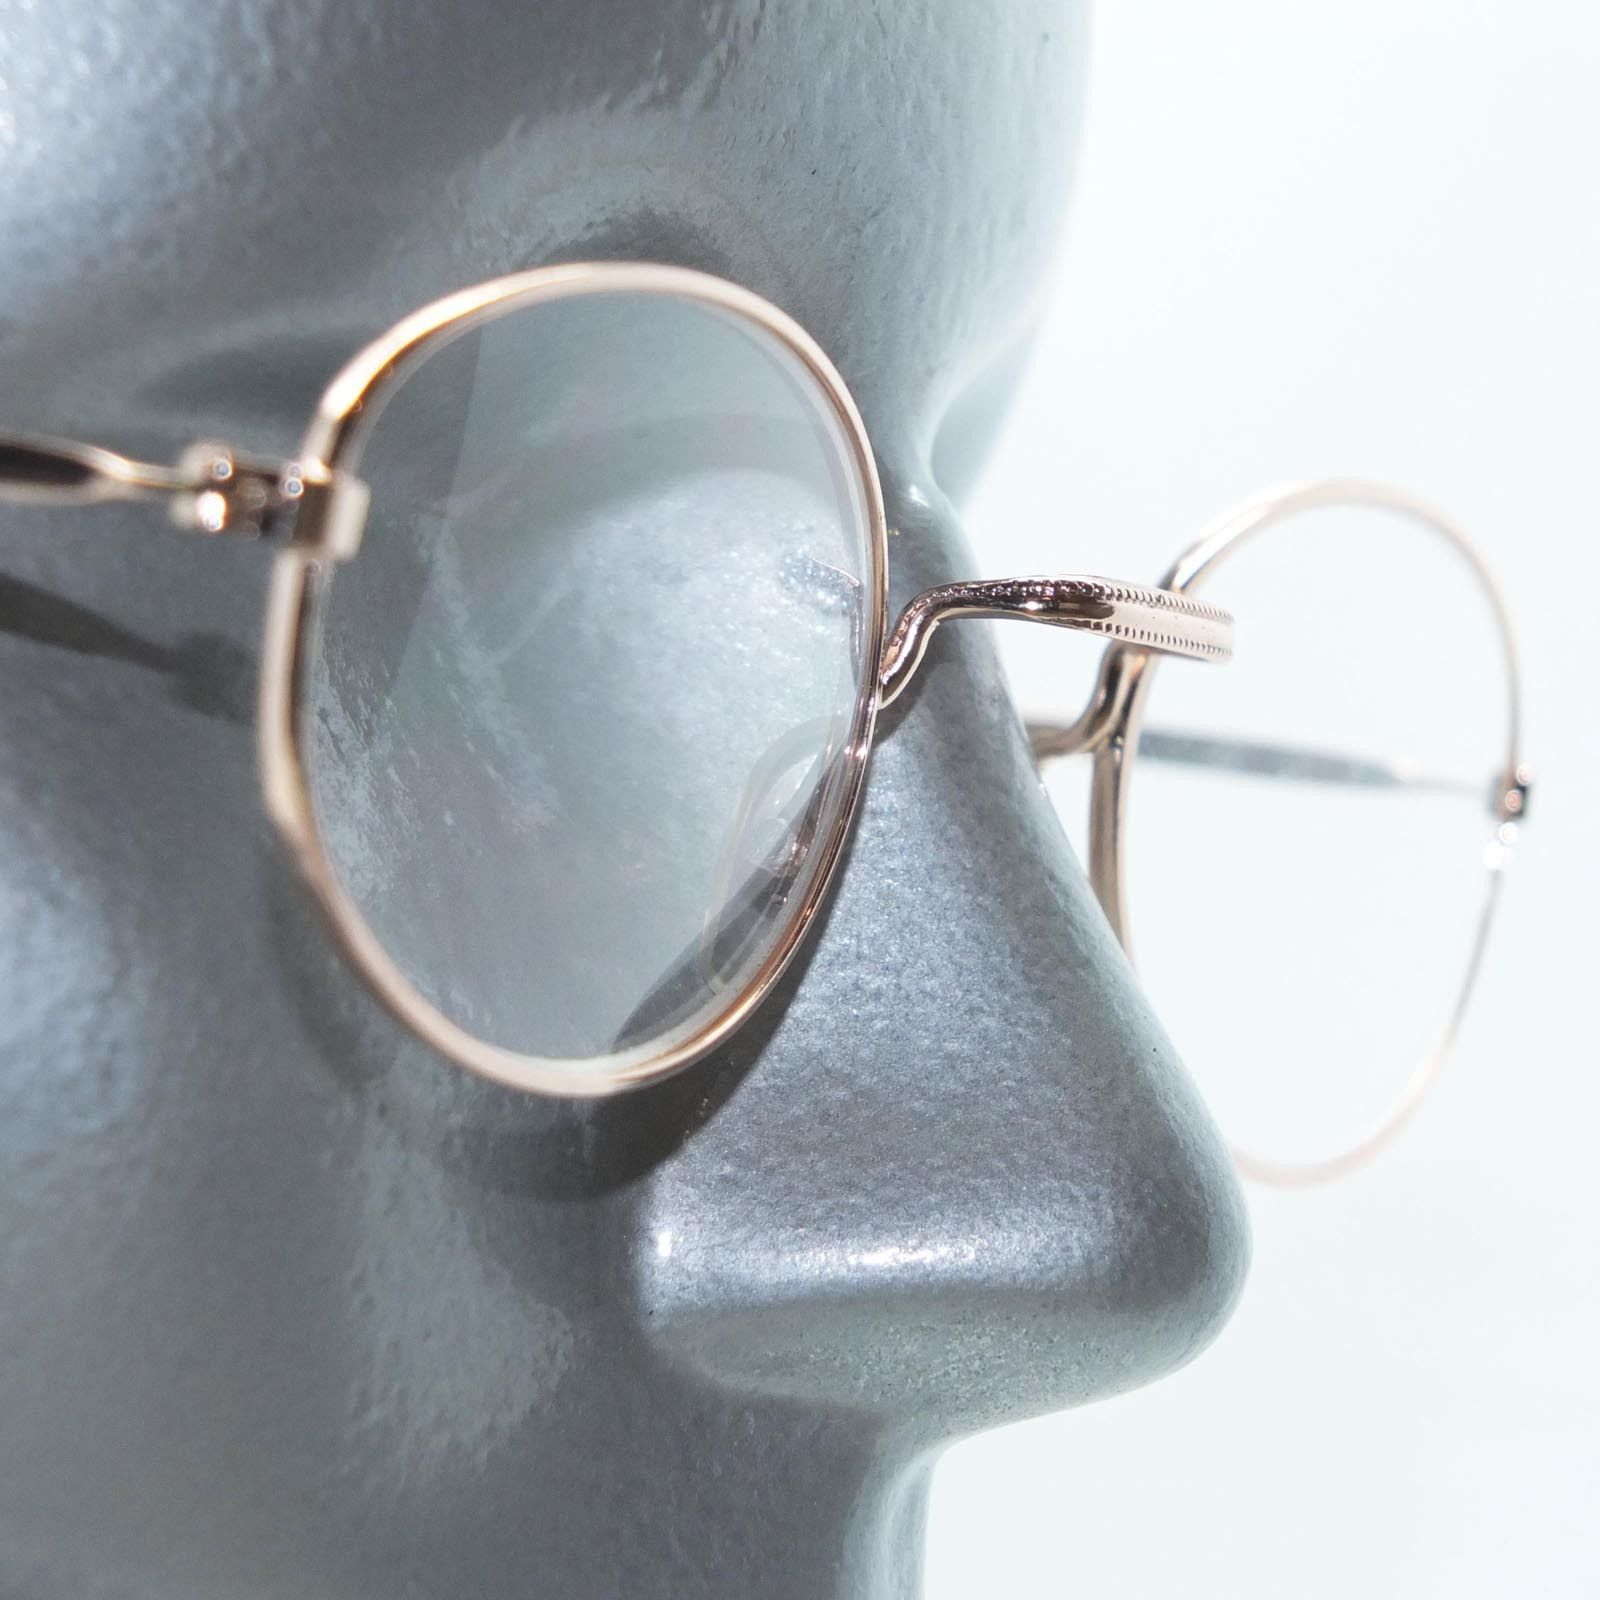 Primary image for Simple Oval Gold Metal Wire Frame Square Bridge Reading Glasses +1.00 Lens